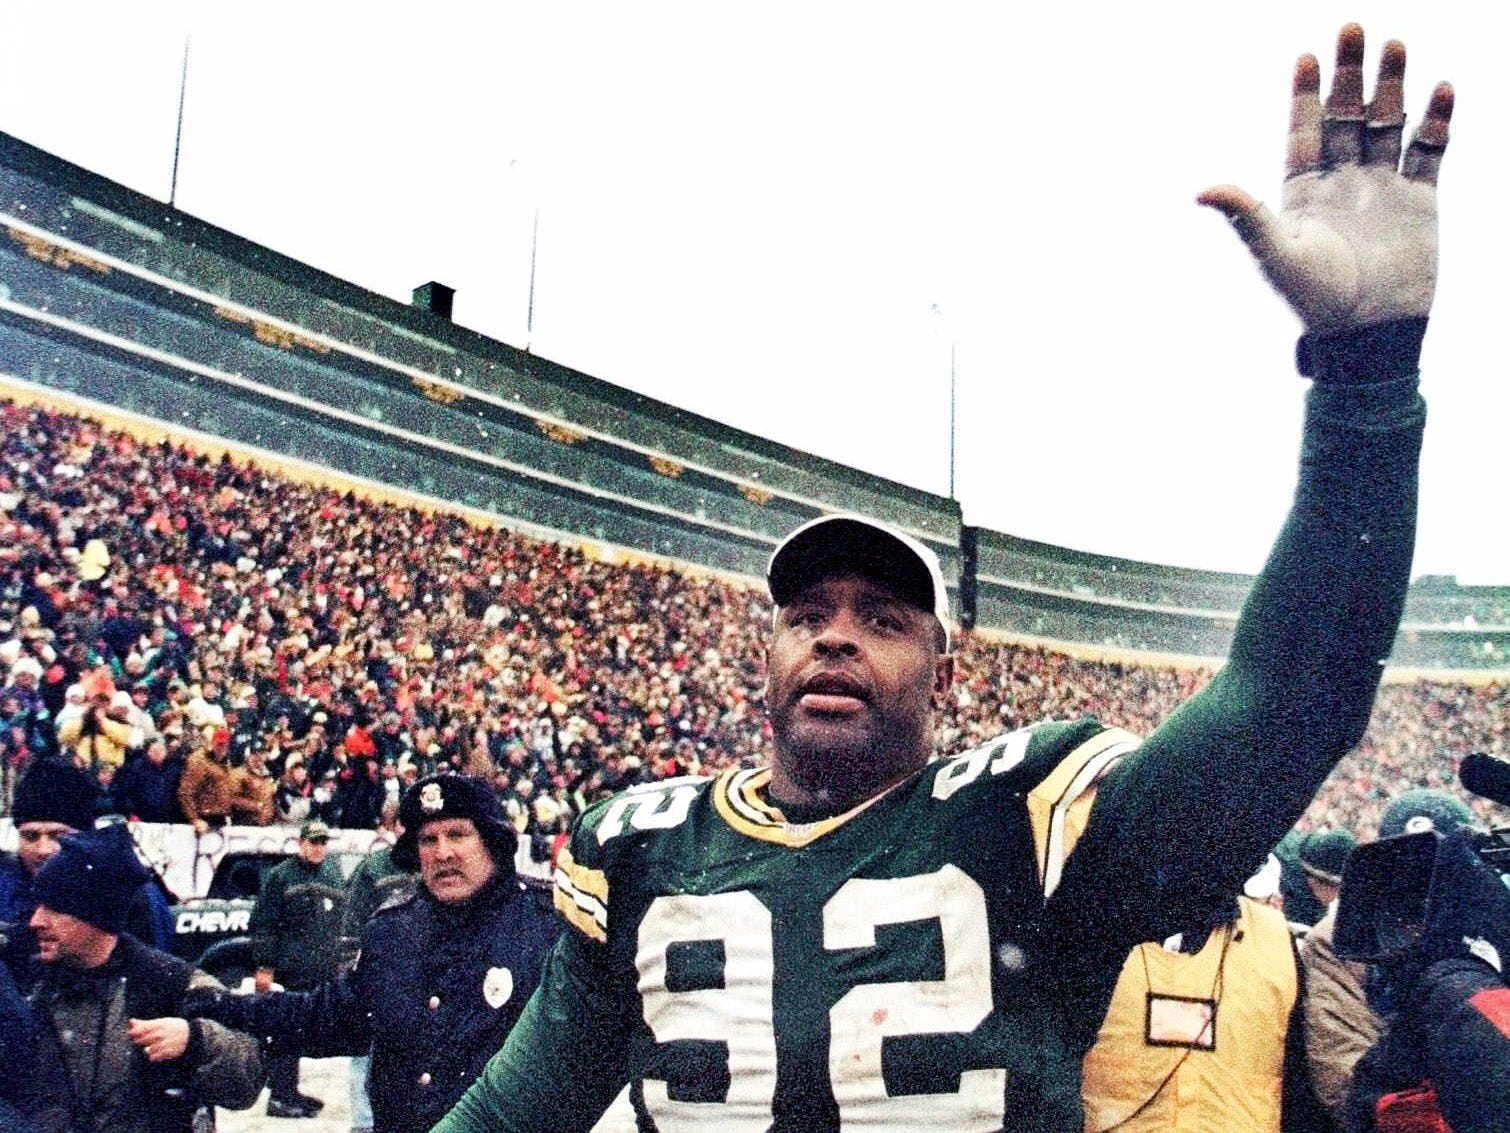 Green Bay Packers' Reggie White waves to the crowd as he walks around the field after the Packers' game against the Tennessee Oilers Dec. 20, 1998 in Green Bay, Wis. The game is likely White's last at Lambeau Field, since he has stated his intention to retire after the season. The Packers won 30-22.